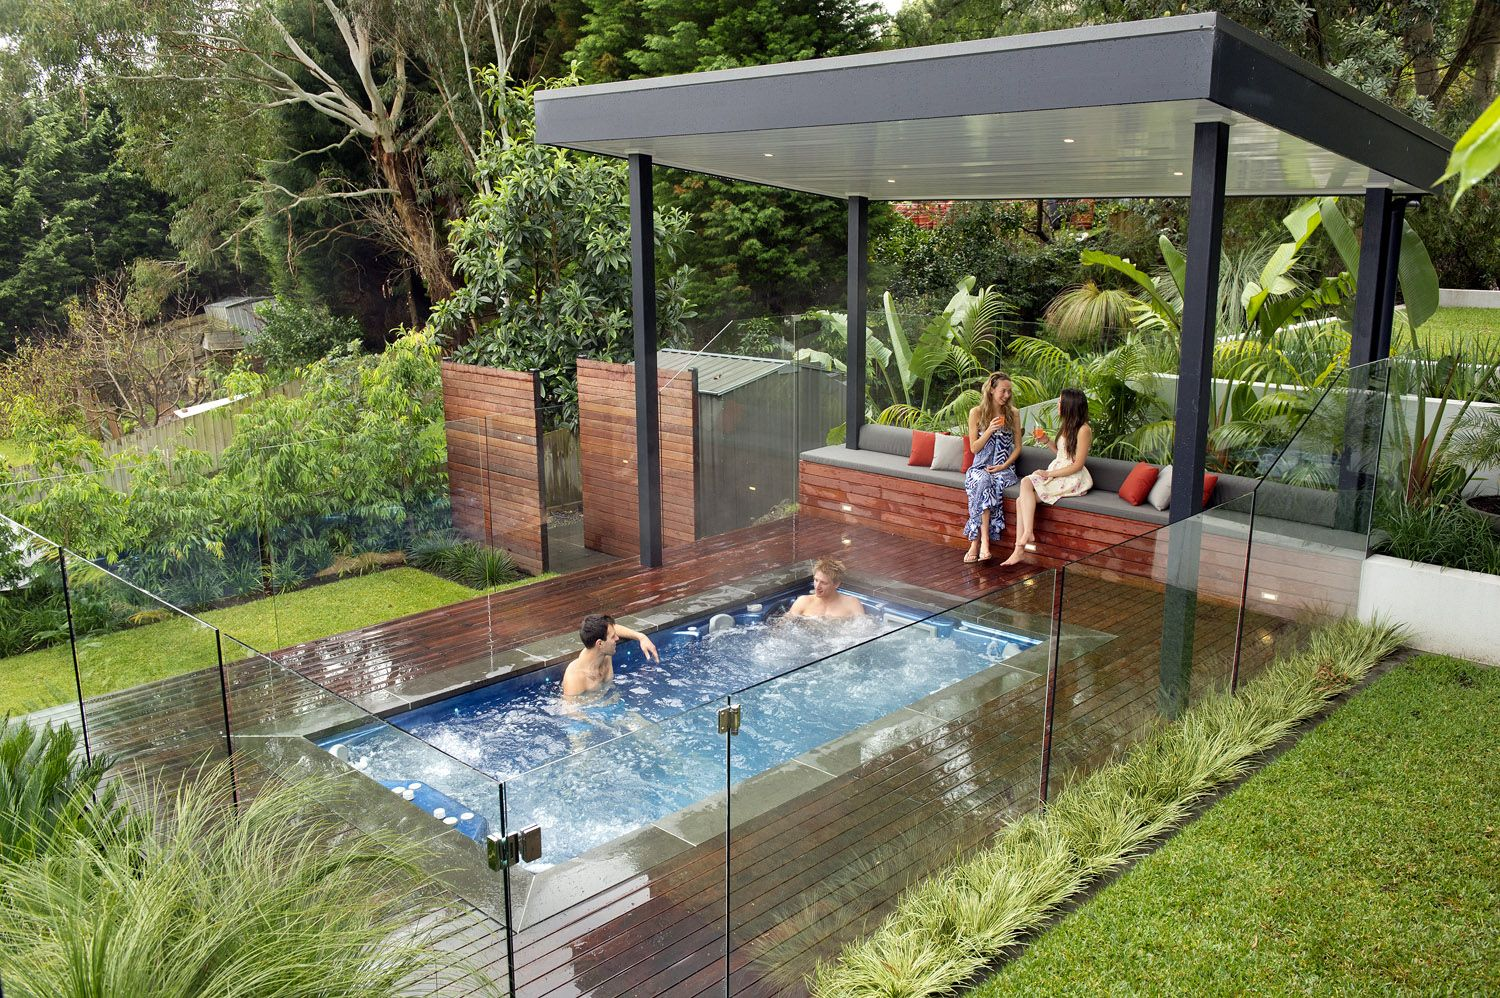 Modern nice design of the outdoor spa landscaping ideas for Garden pool landscaping